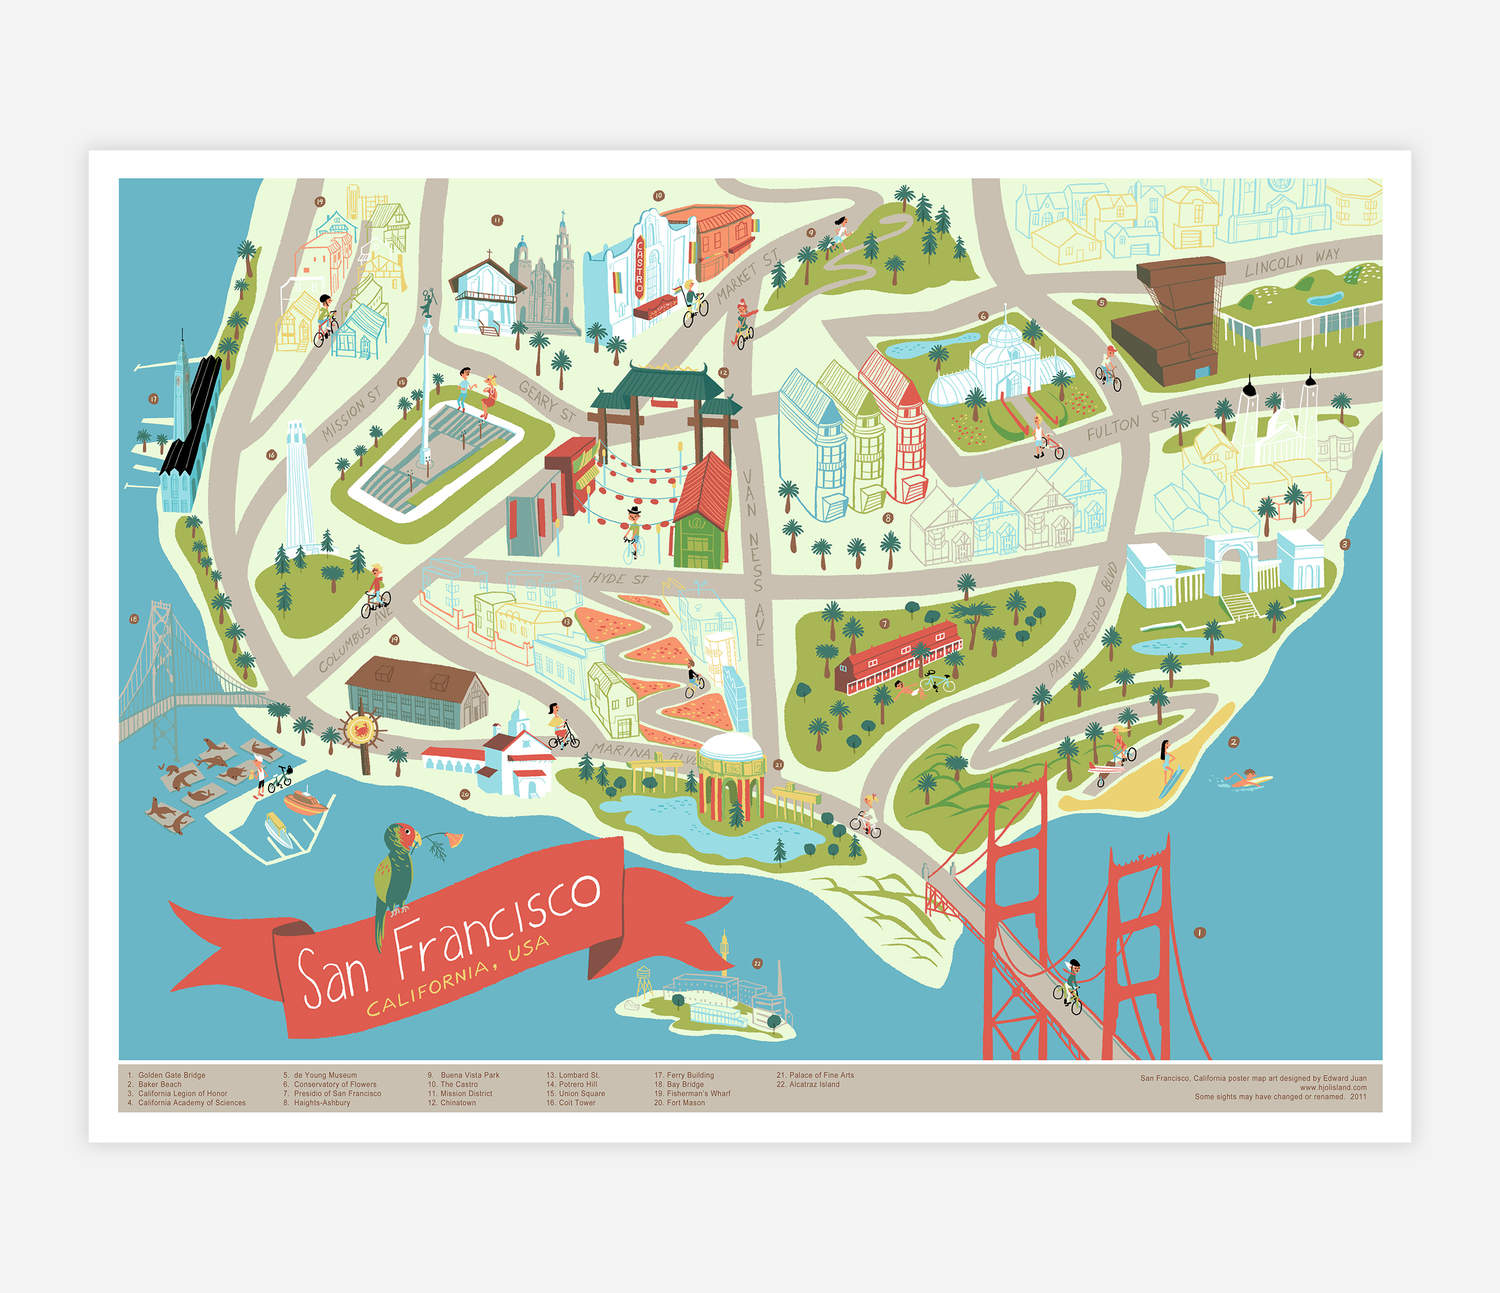 photo about San Francisco Maps Printable called San Francisco